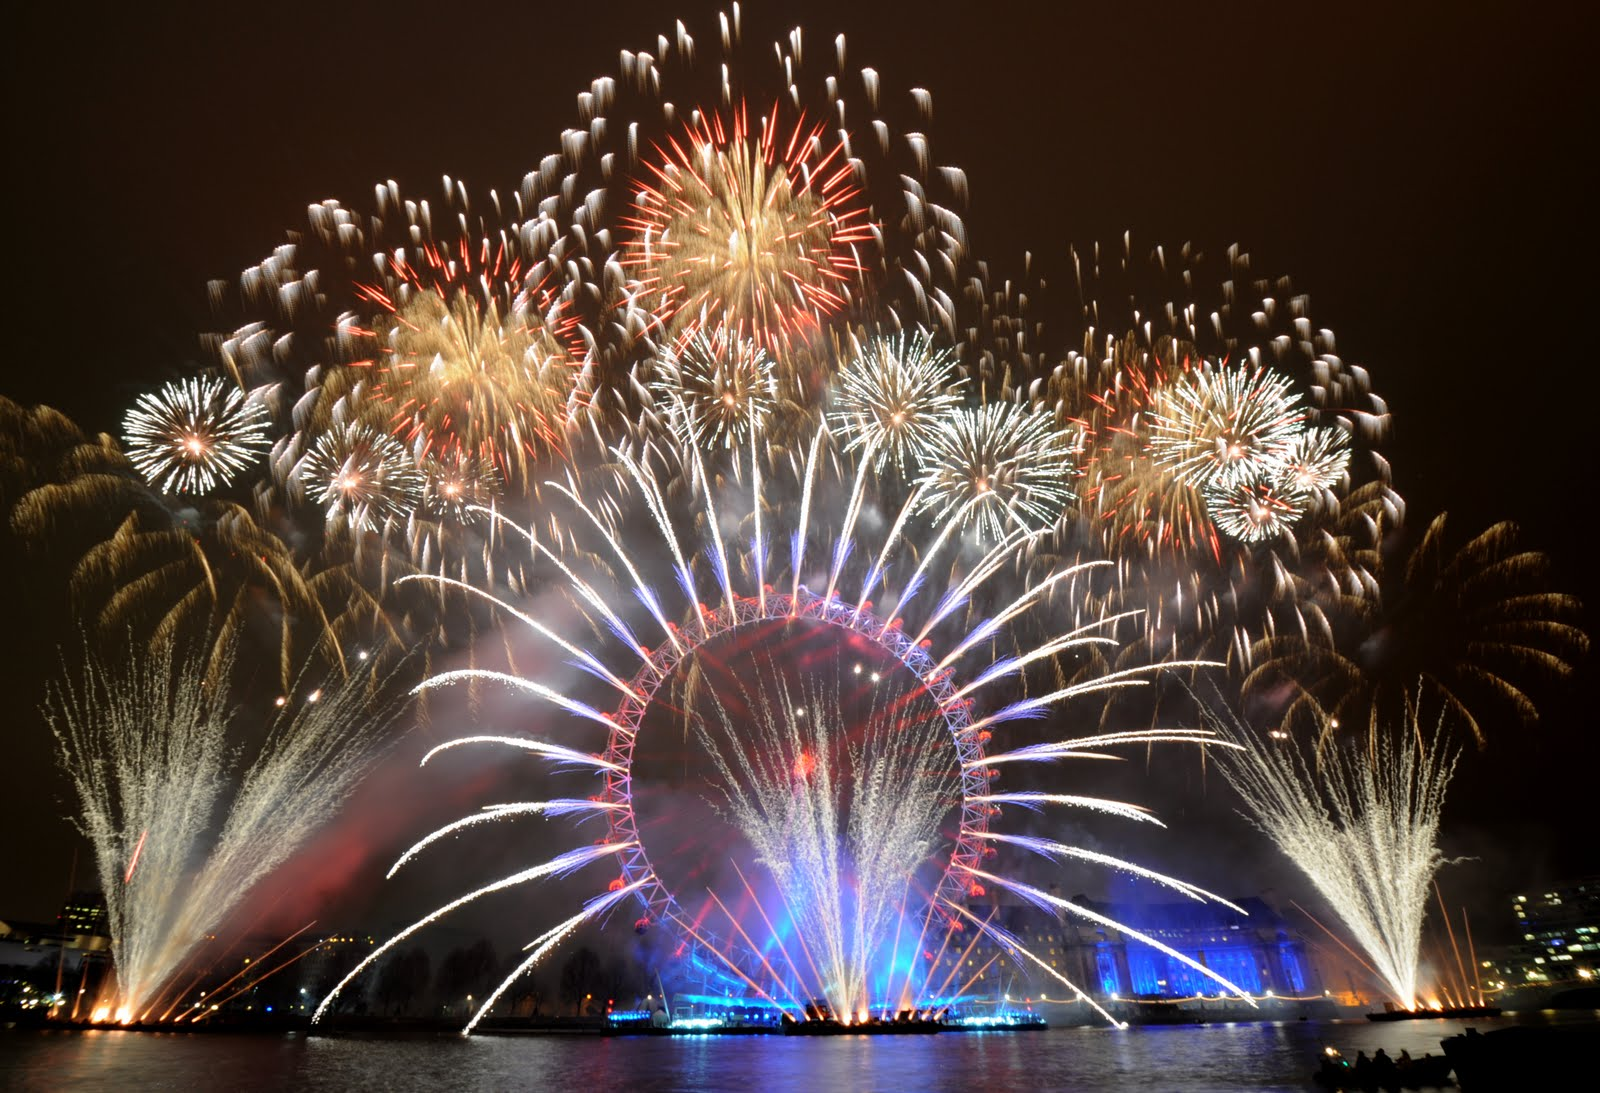 Best Hotel In London For New Years Eve Fireworks